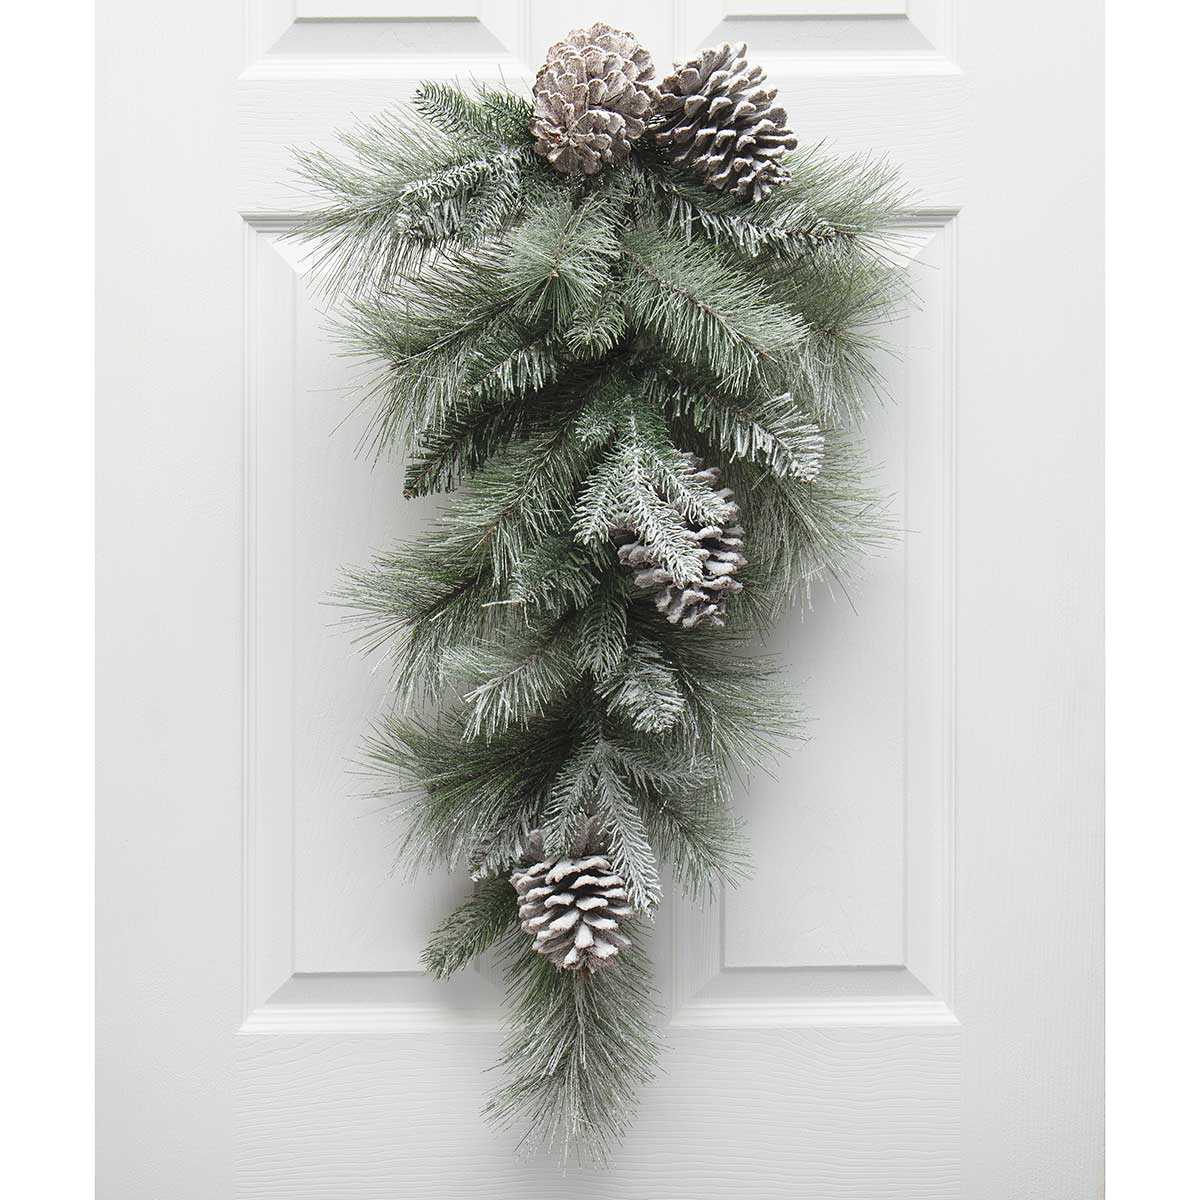 MAJESTIC FROSTED PINE BOUGH GREEN WITH PINECONES AND